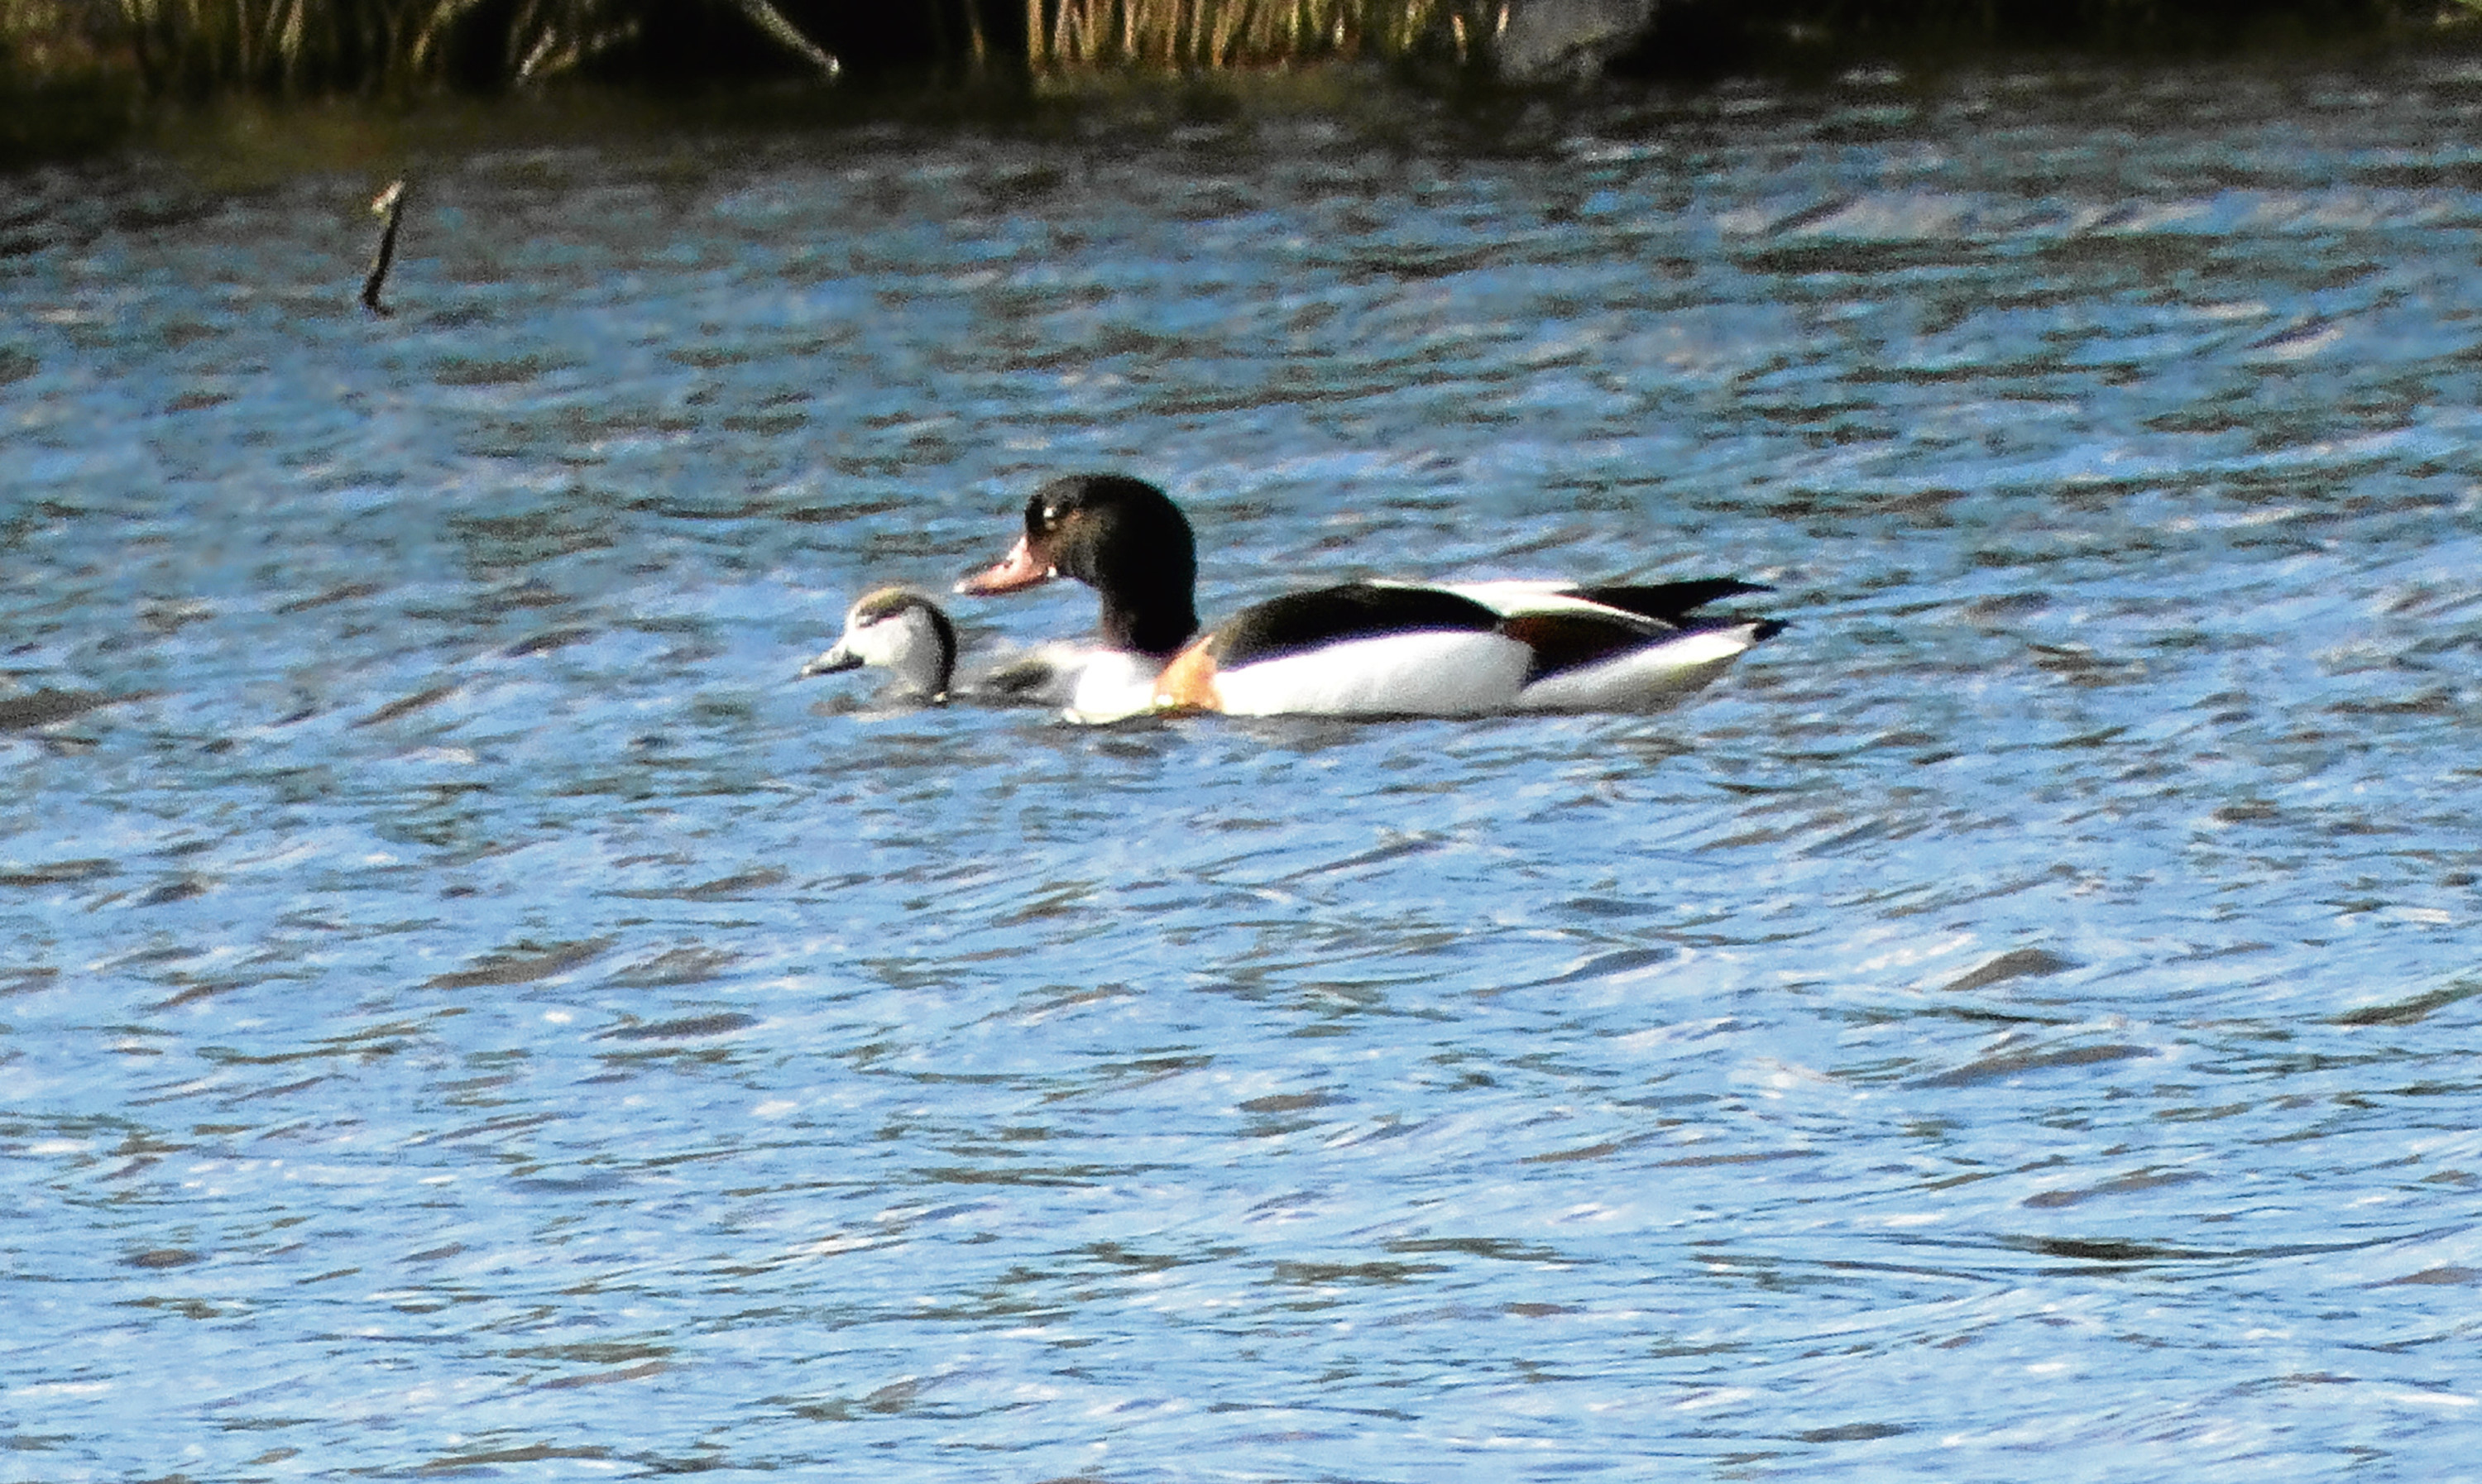 The shelduck on the loch at the foot of Glenesk and its one surviving duckling. Angus fears predators may have left her with just the single survivor.